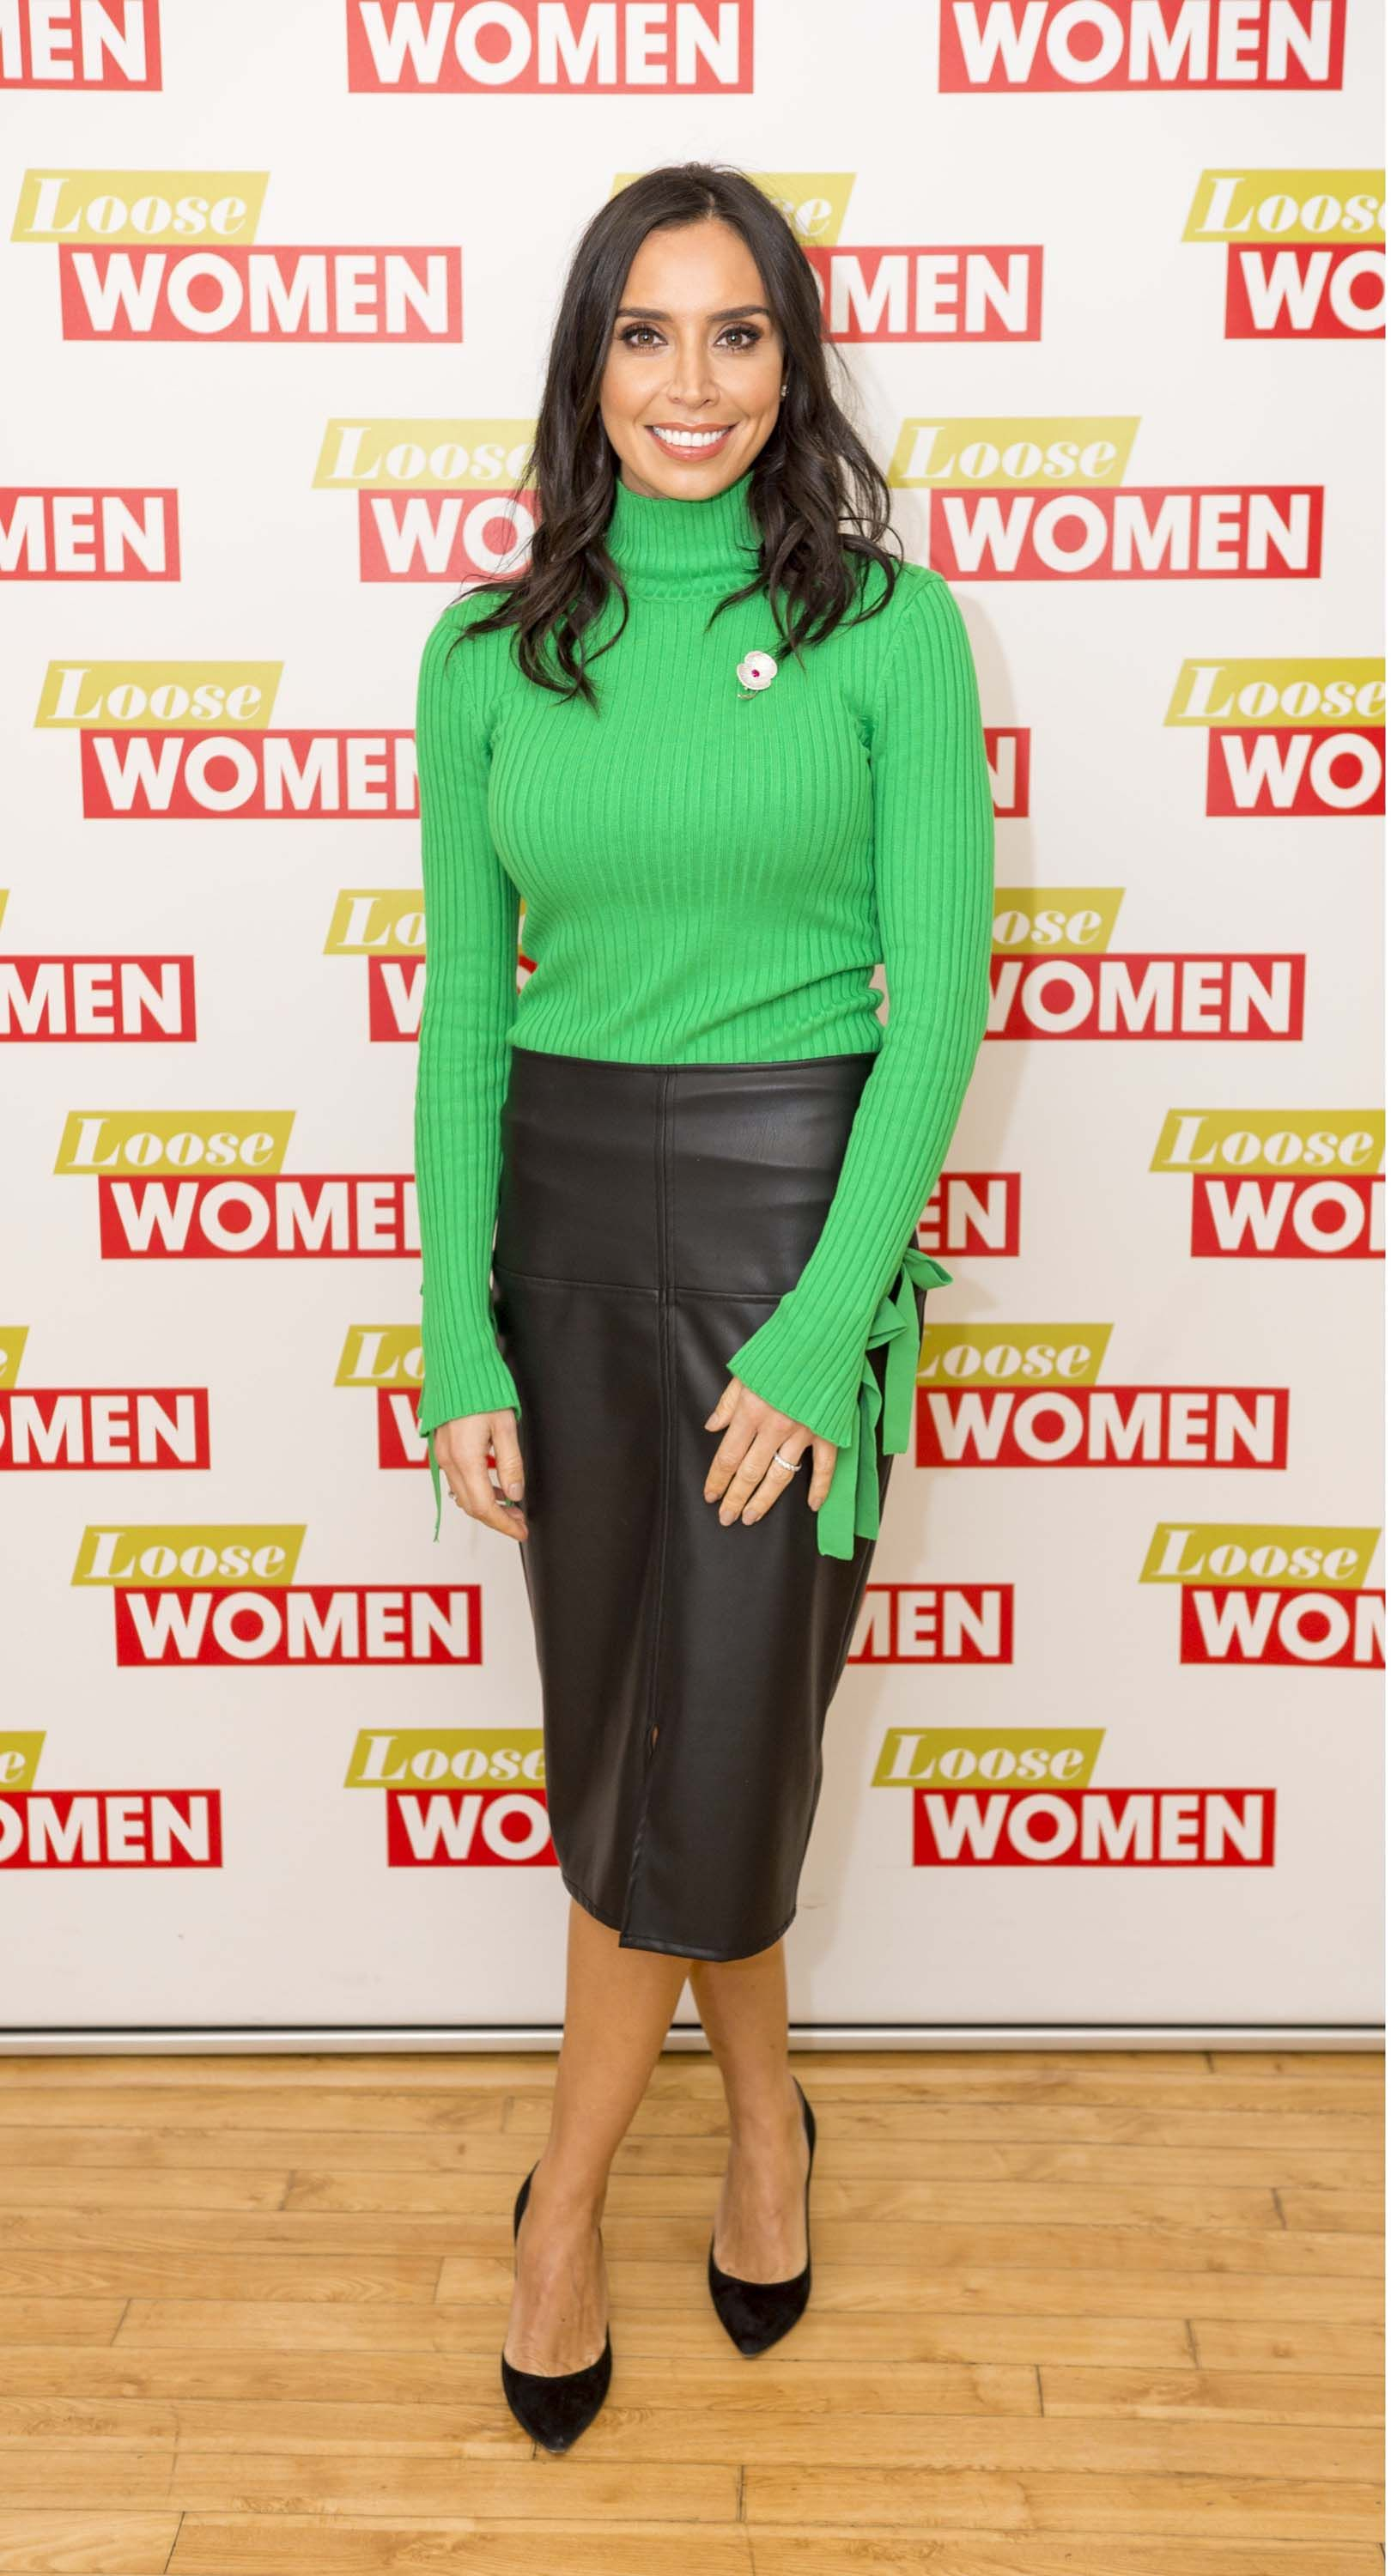 Pictures Christine Bleakley nudes (59 photos), Ass, Is a cute, Instagram, cleavage 2006